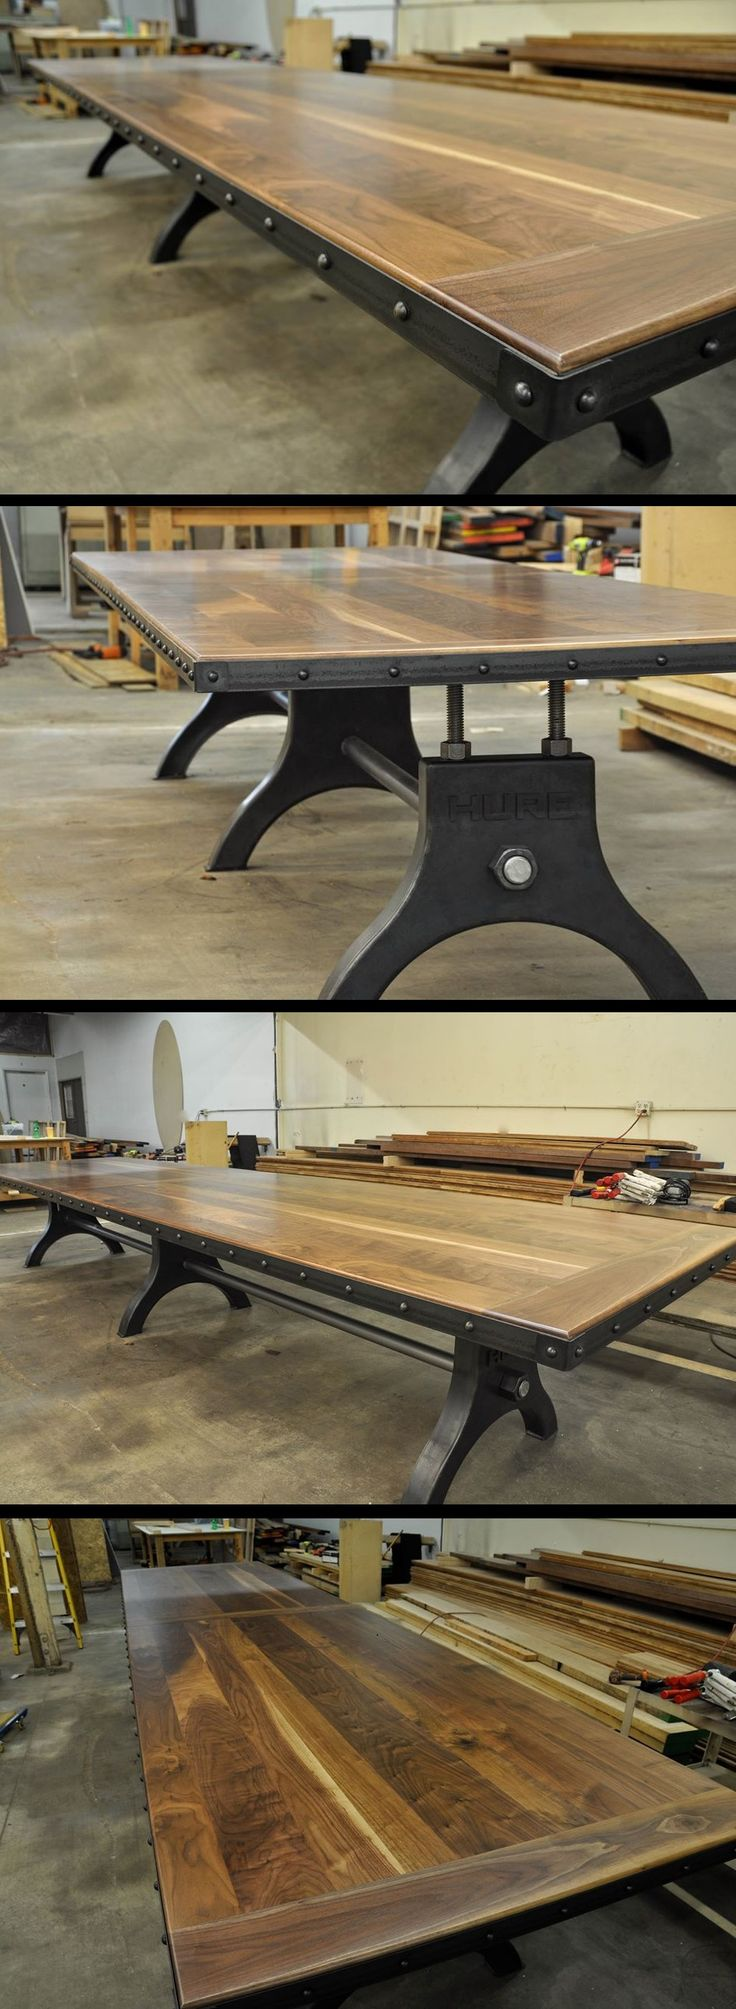 Hure Conference Table by Vintage Industrial Furniture in Phoenix, AZ